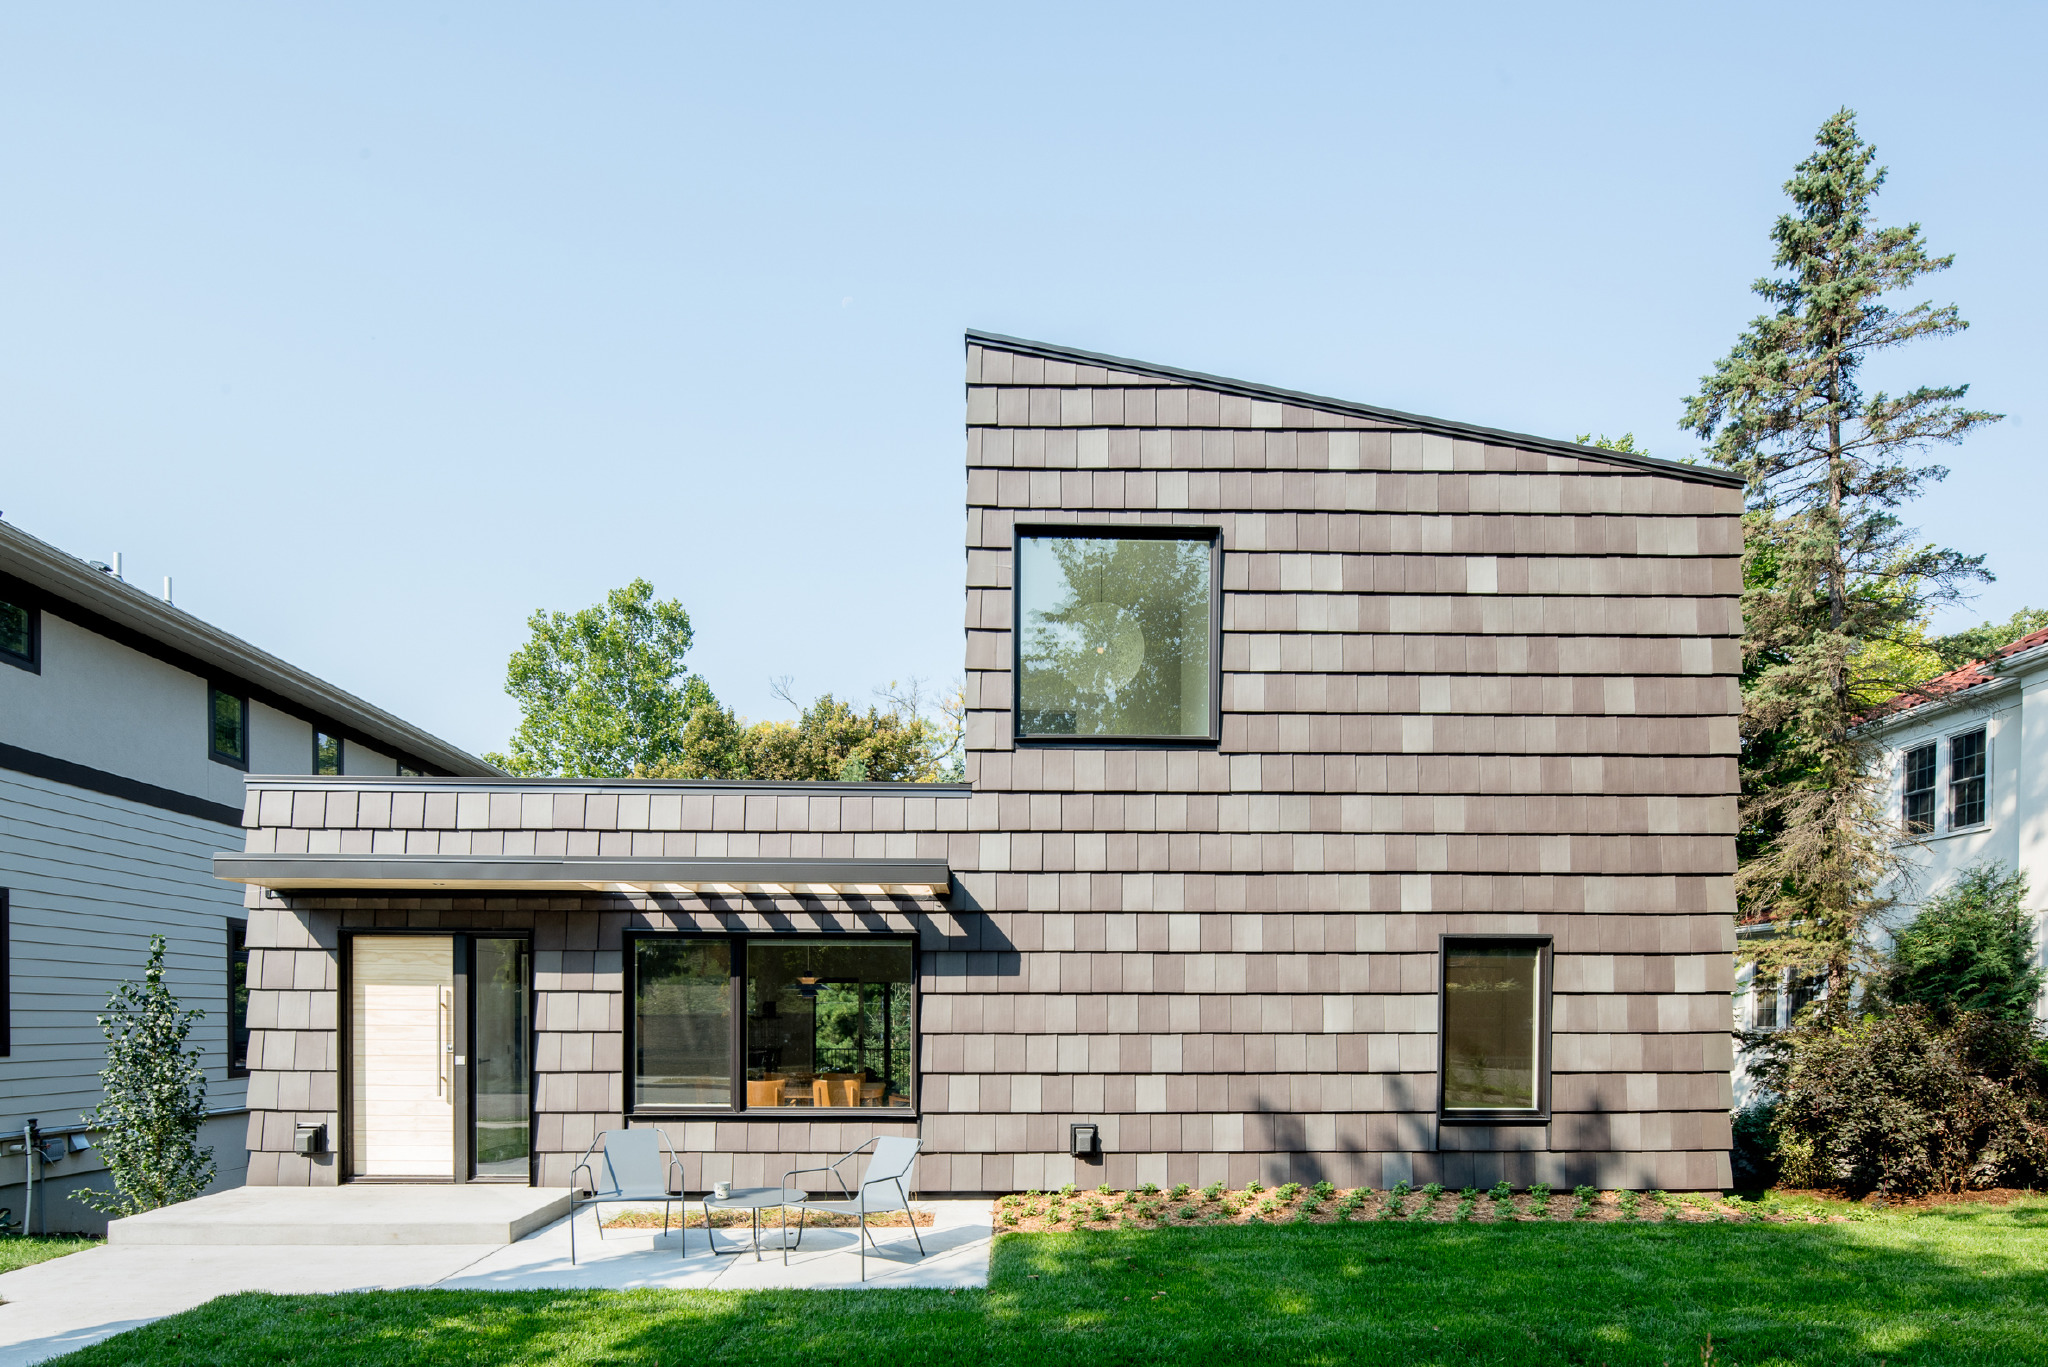 Photo of a home designed by Christian Dean Architecture